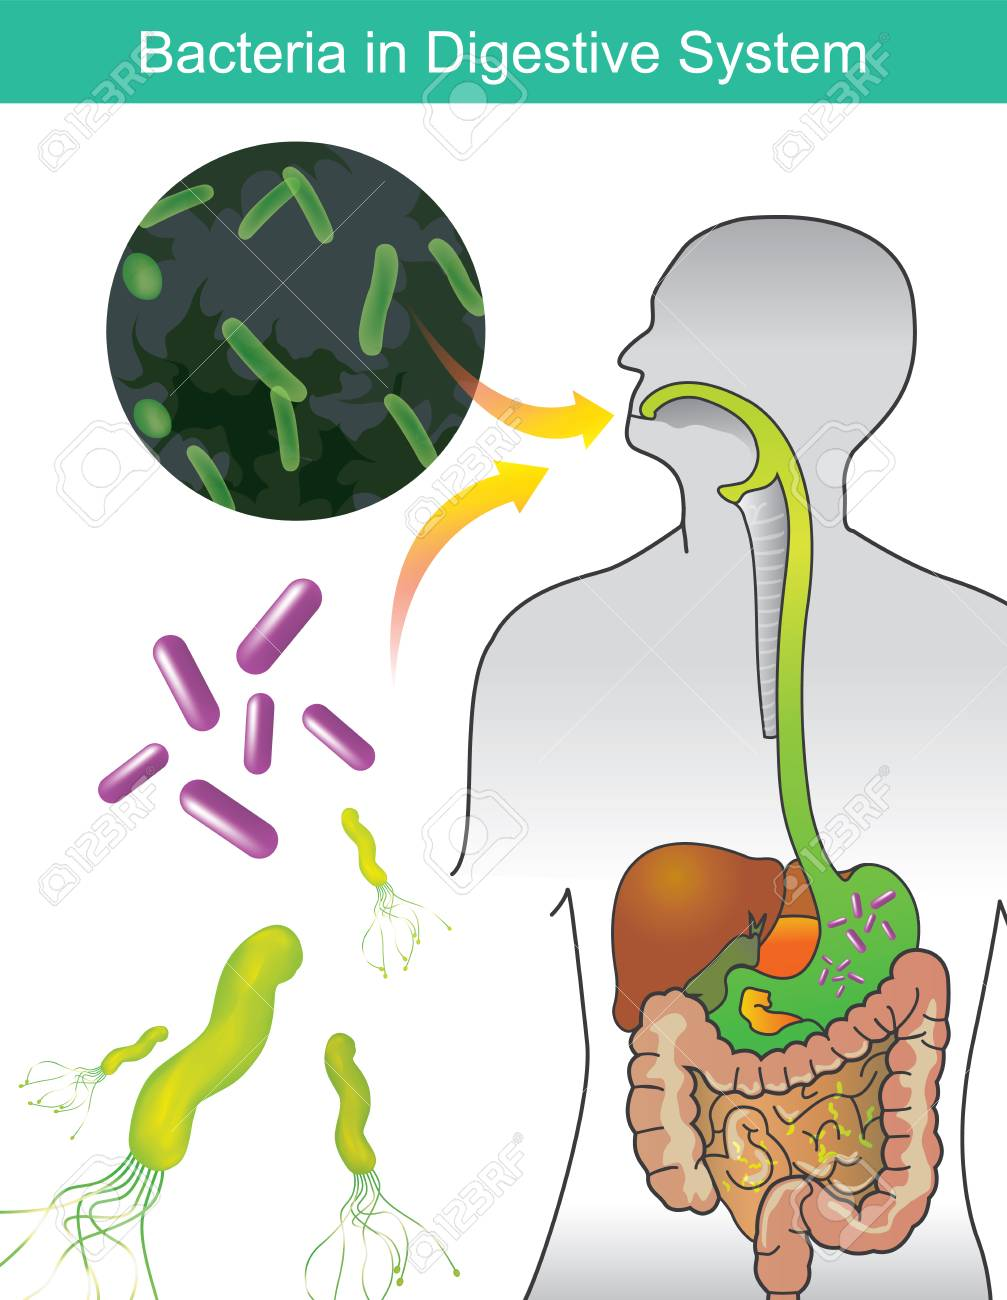 Bacteria In Digestive System Illustration Info Graphic Royalty